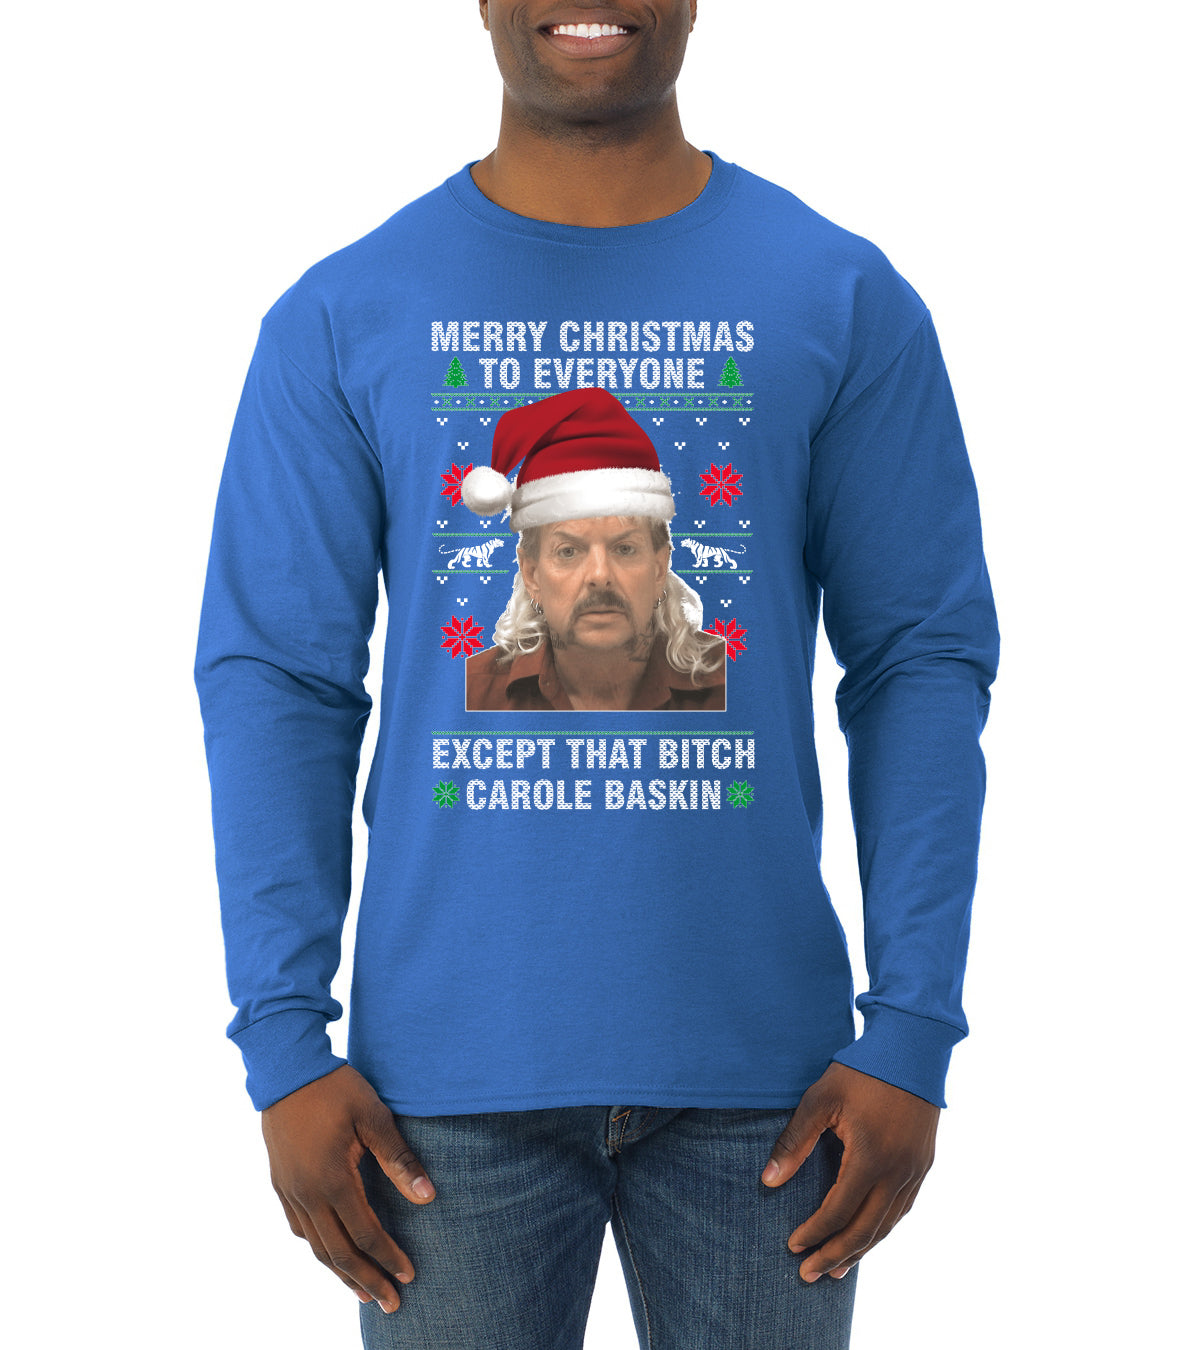 Merry Christmas to Everyone Except Carole Baskin Ugly Christmas Sweater Mens Long Sleeve Shirt